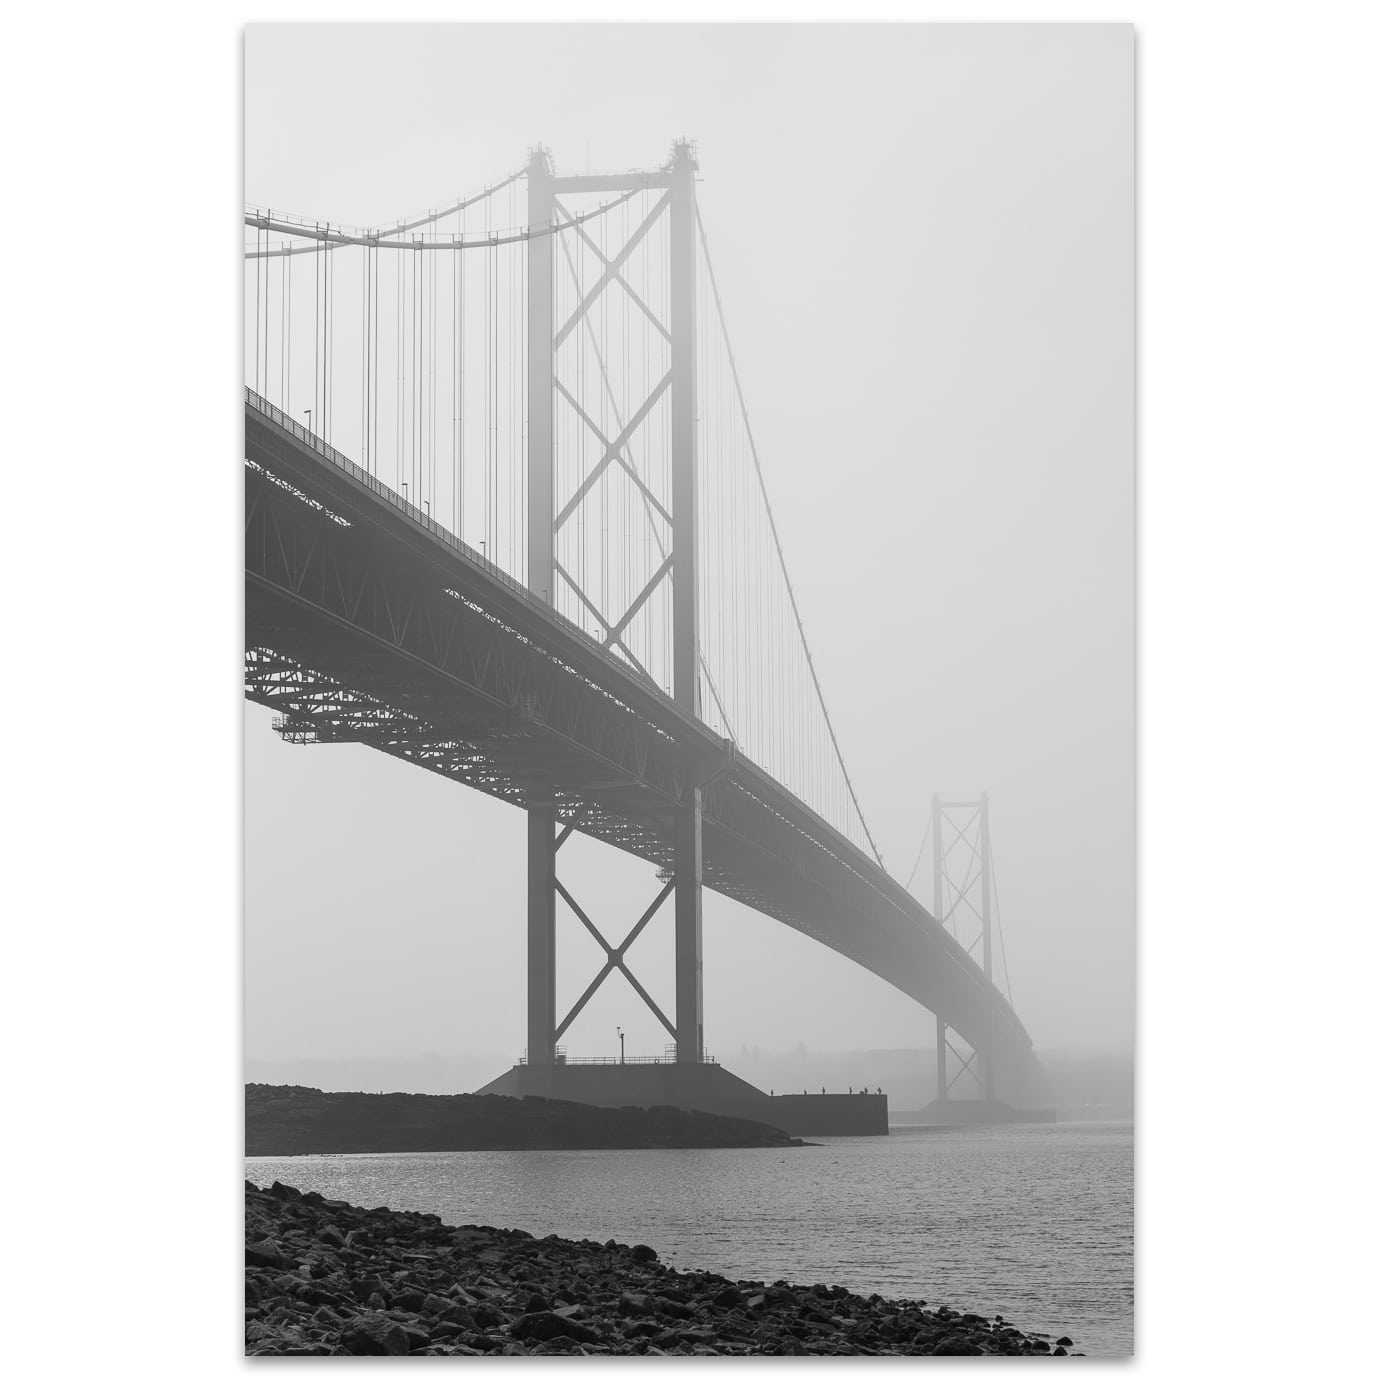 The Forth Road Bridge near Edinburgh Scotland